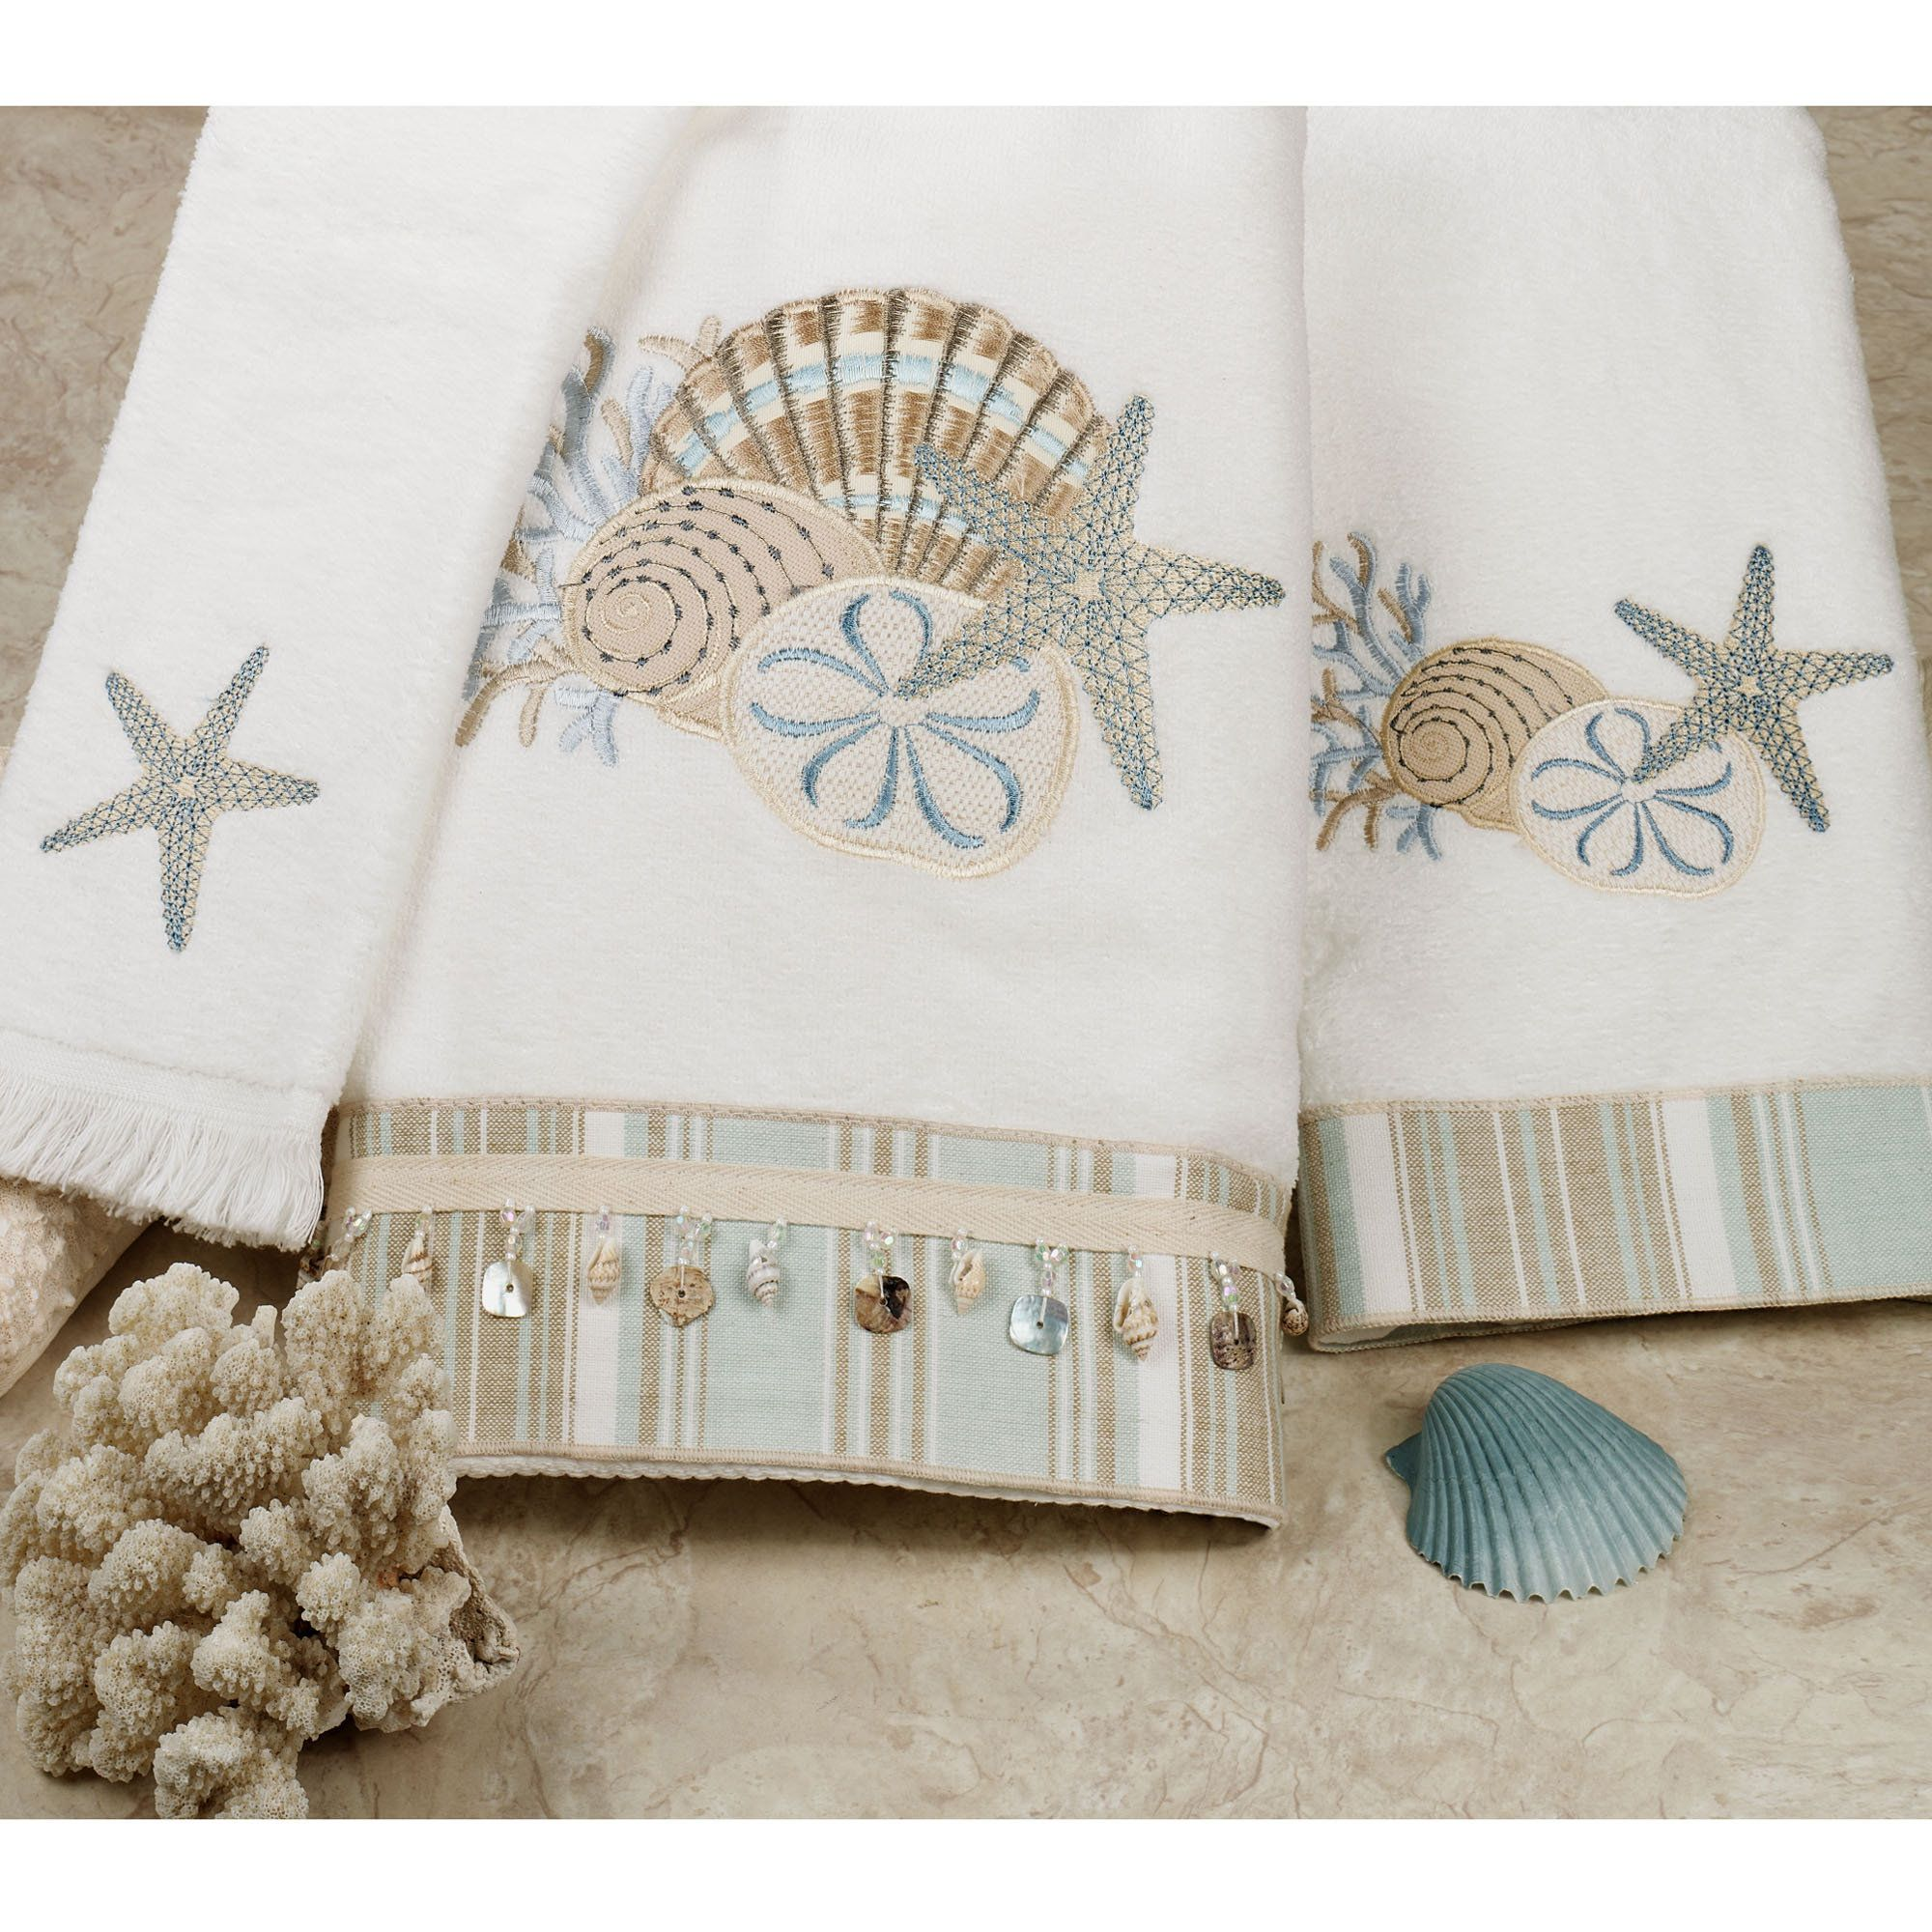 home and garden bath towels monogrammed bath towel set zodiac monogrammed  embroidery bath towel set cotton .